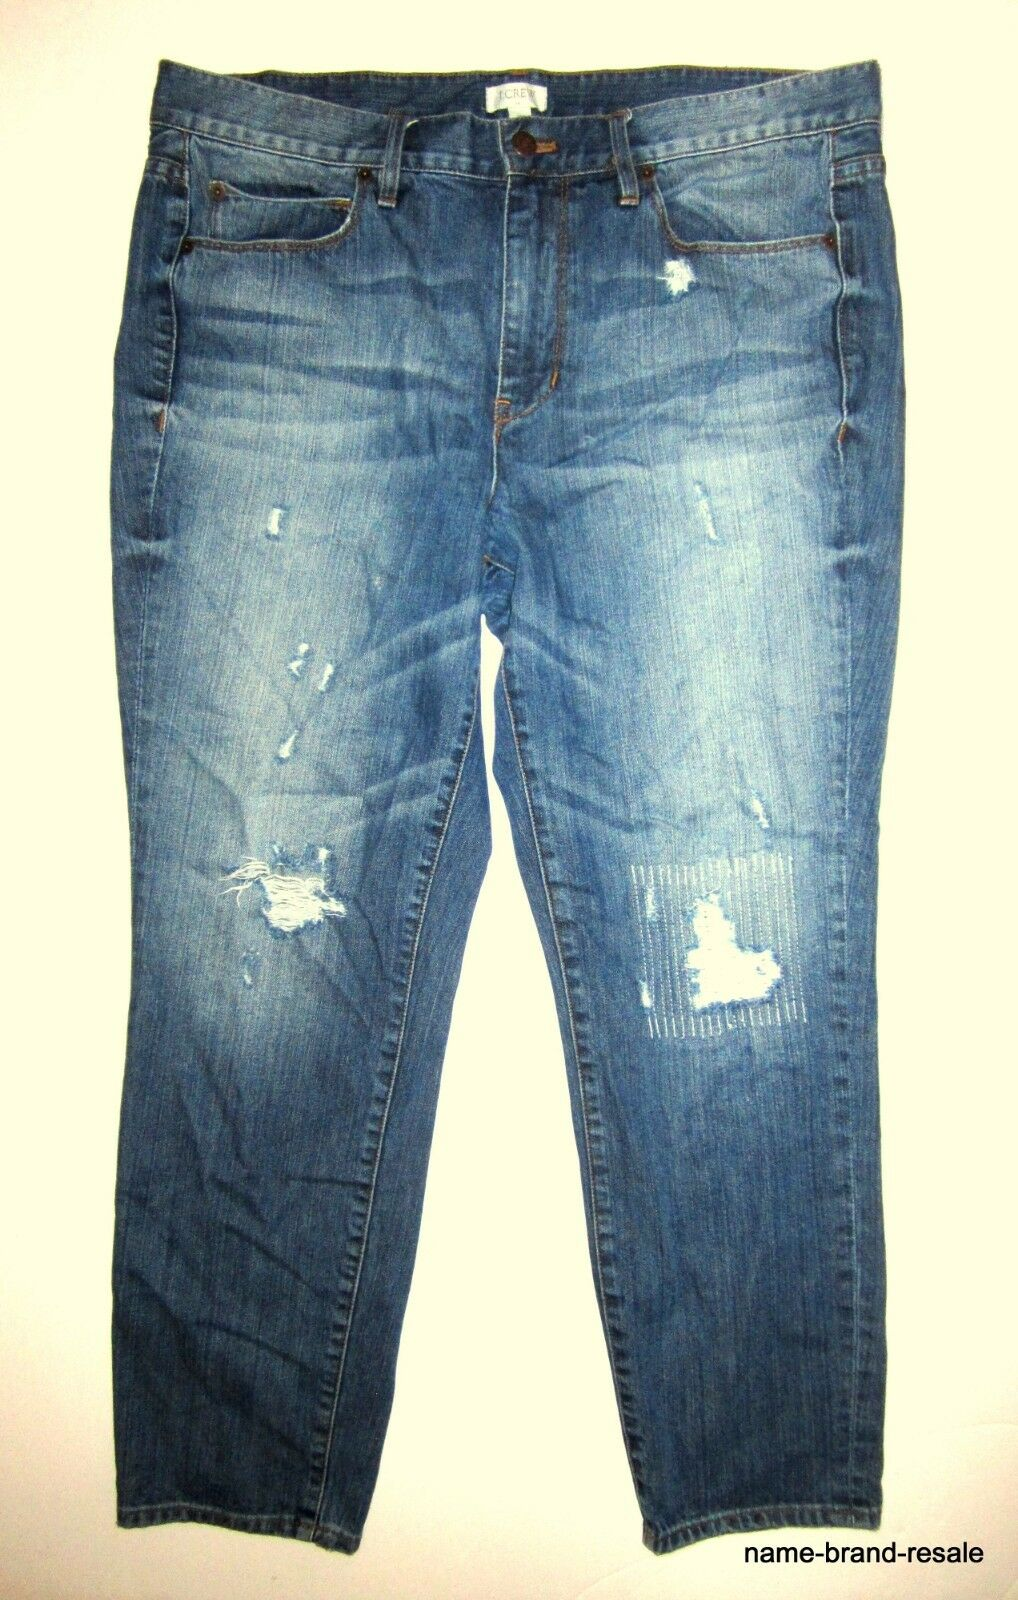 J.CREW Boyfriend Ripped Jeans Womens 31 Rip Repair Stitched Denim Loose Relaxed